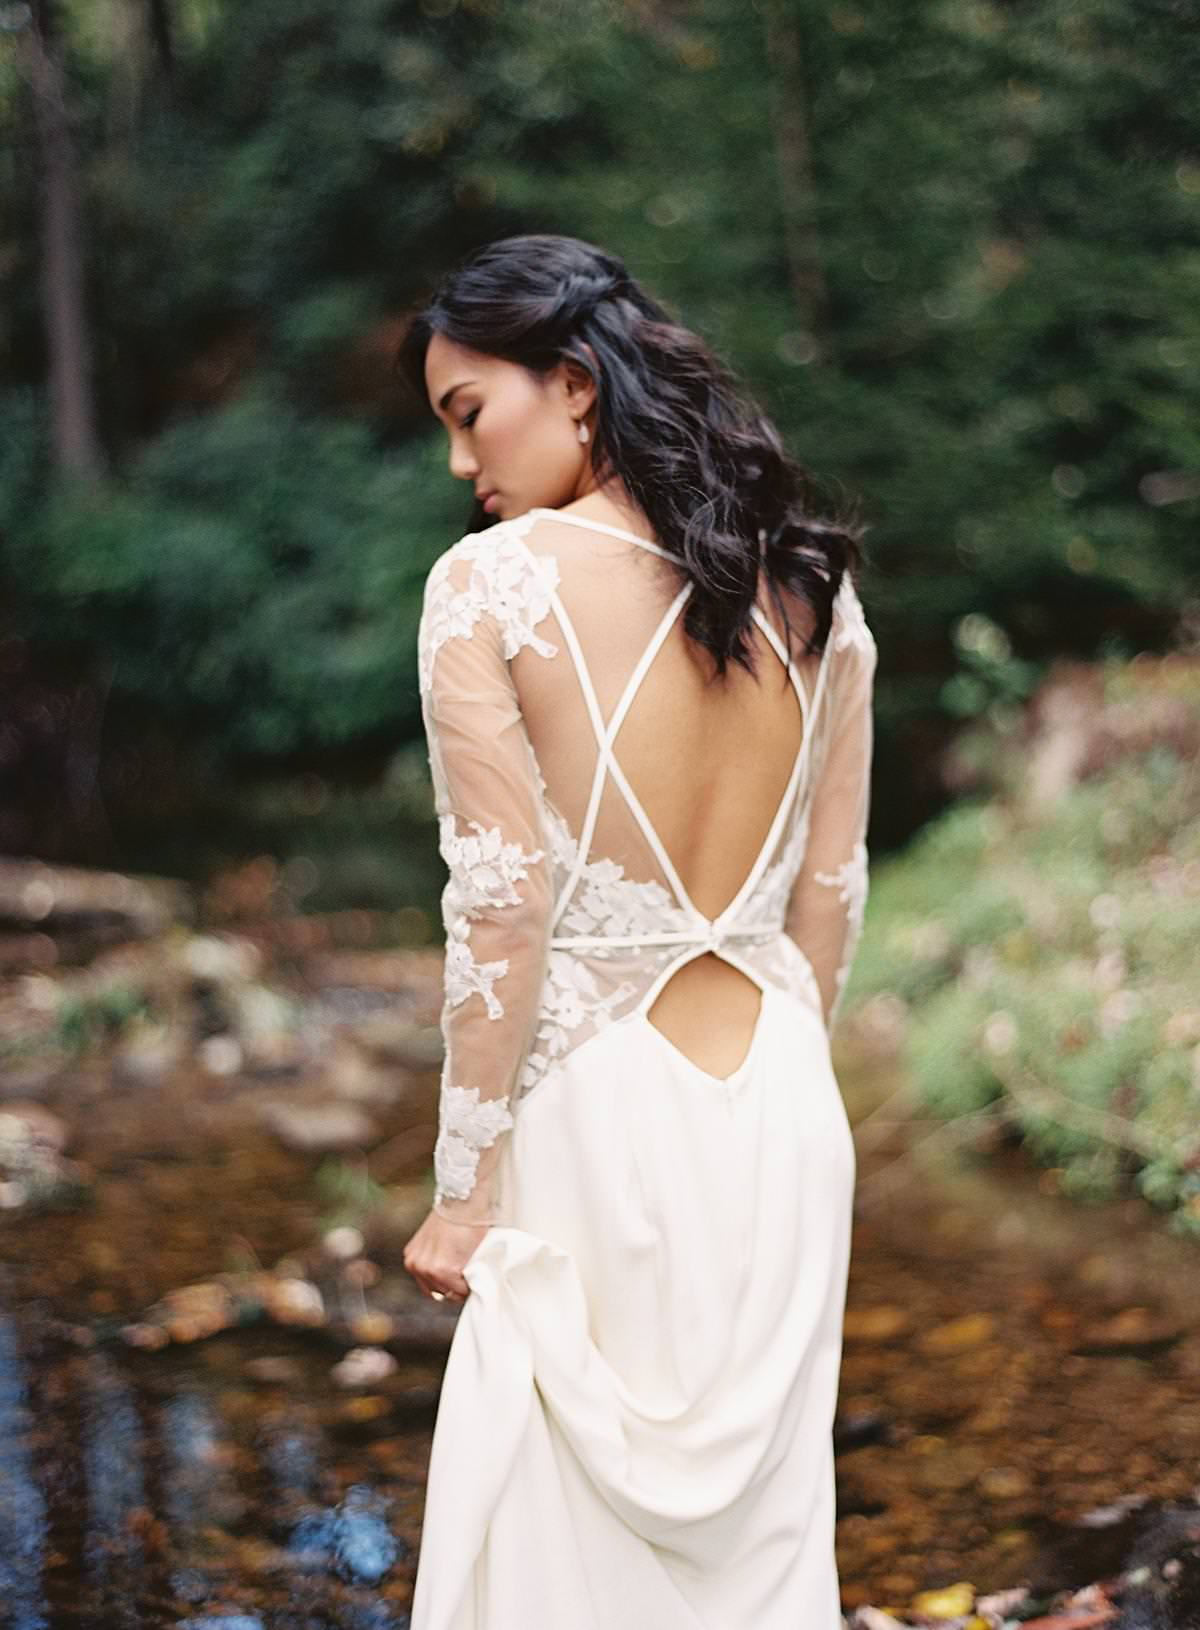 hayley paige backless dress